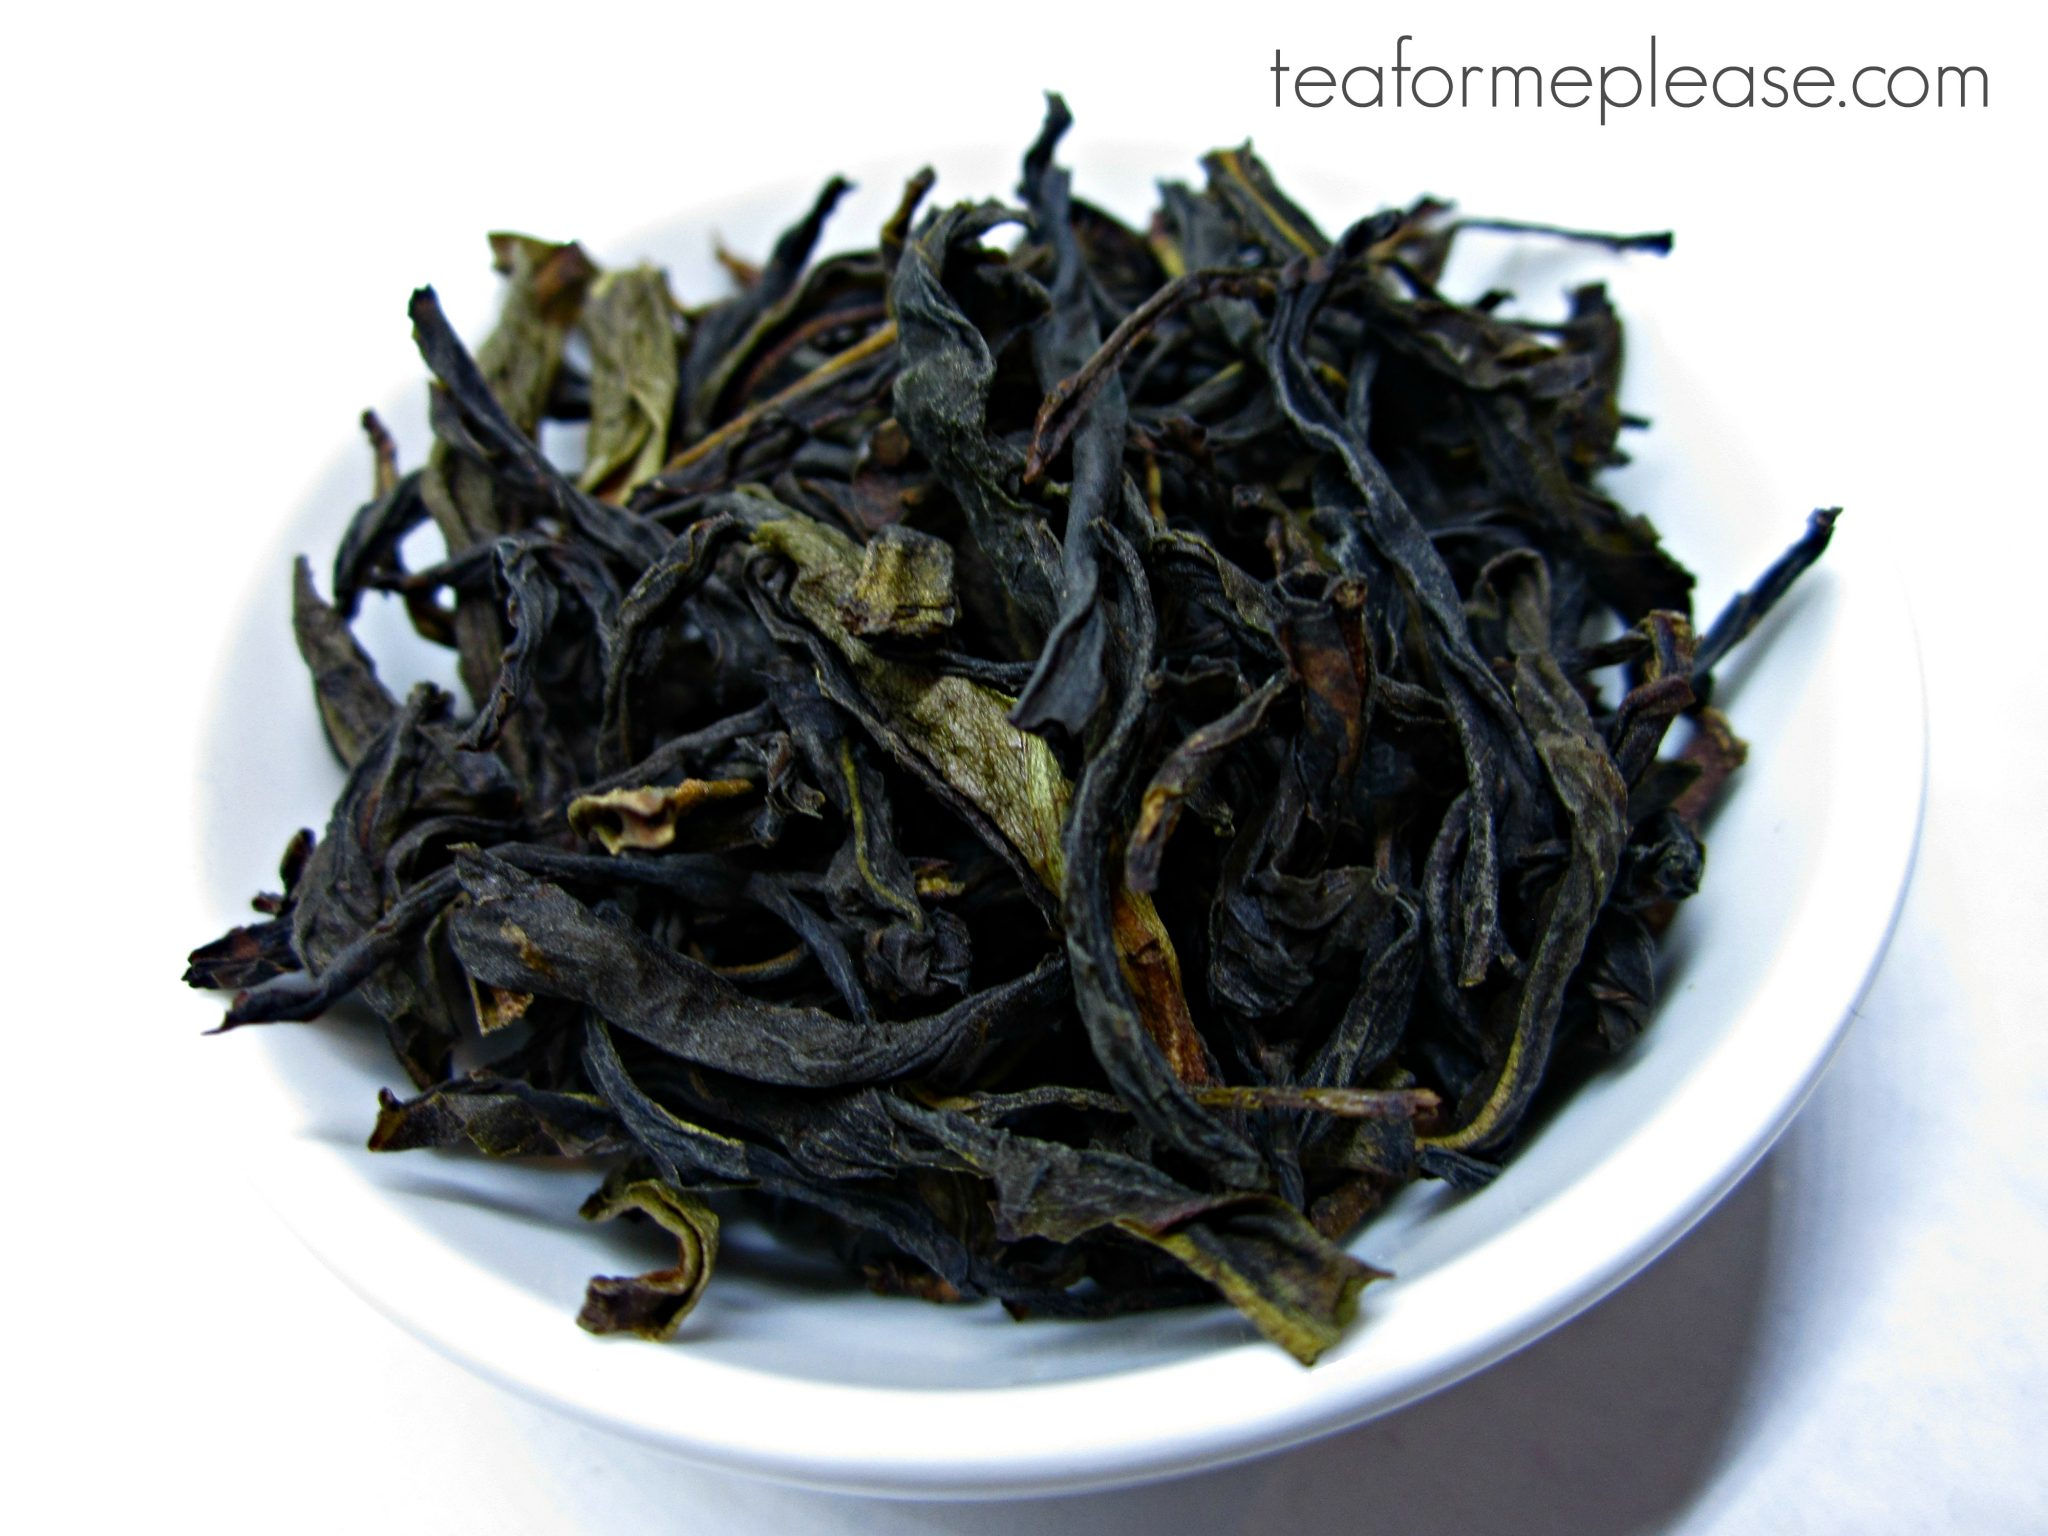 Magnolia fragrance oolong leaves